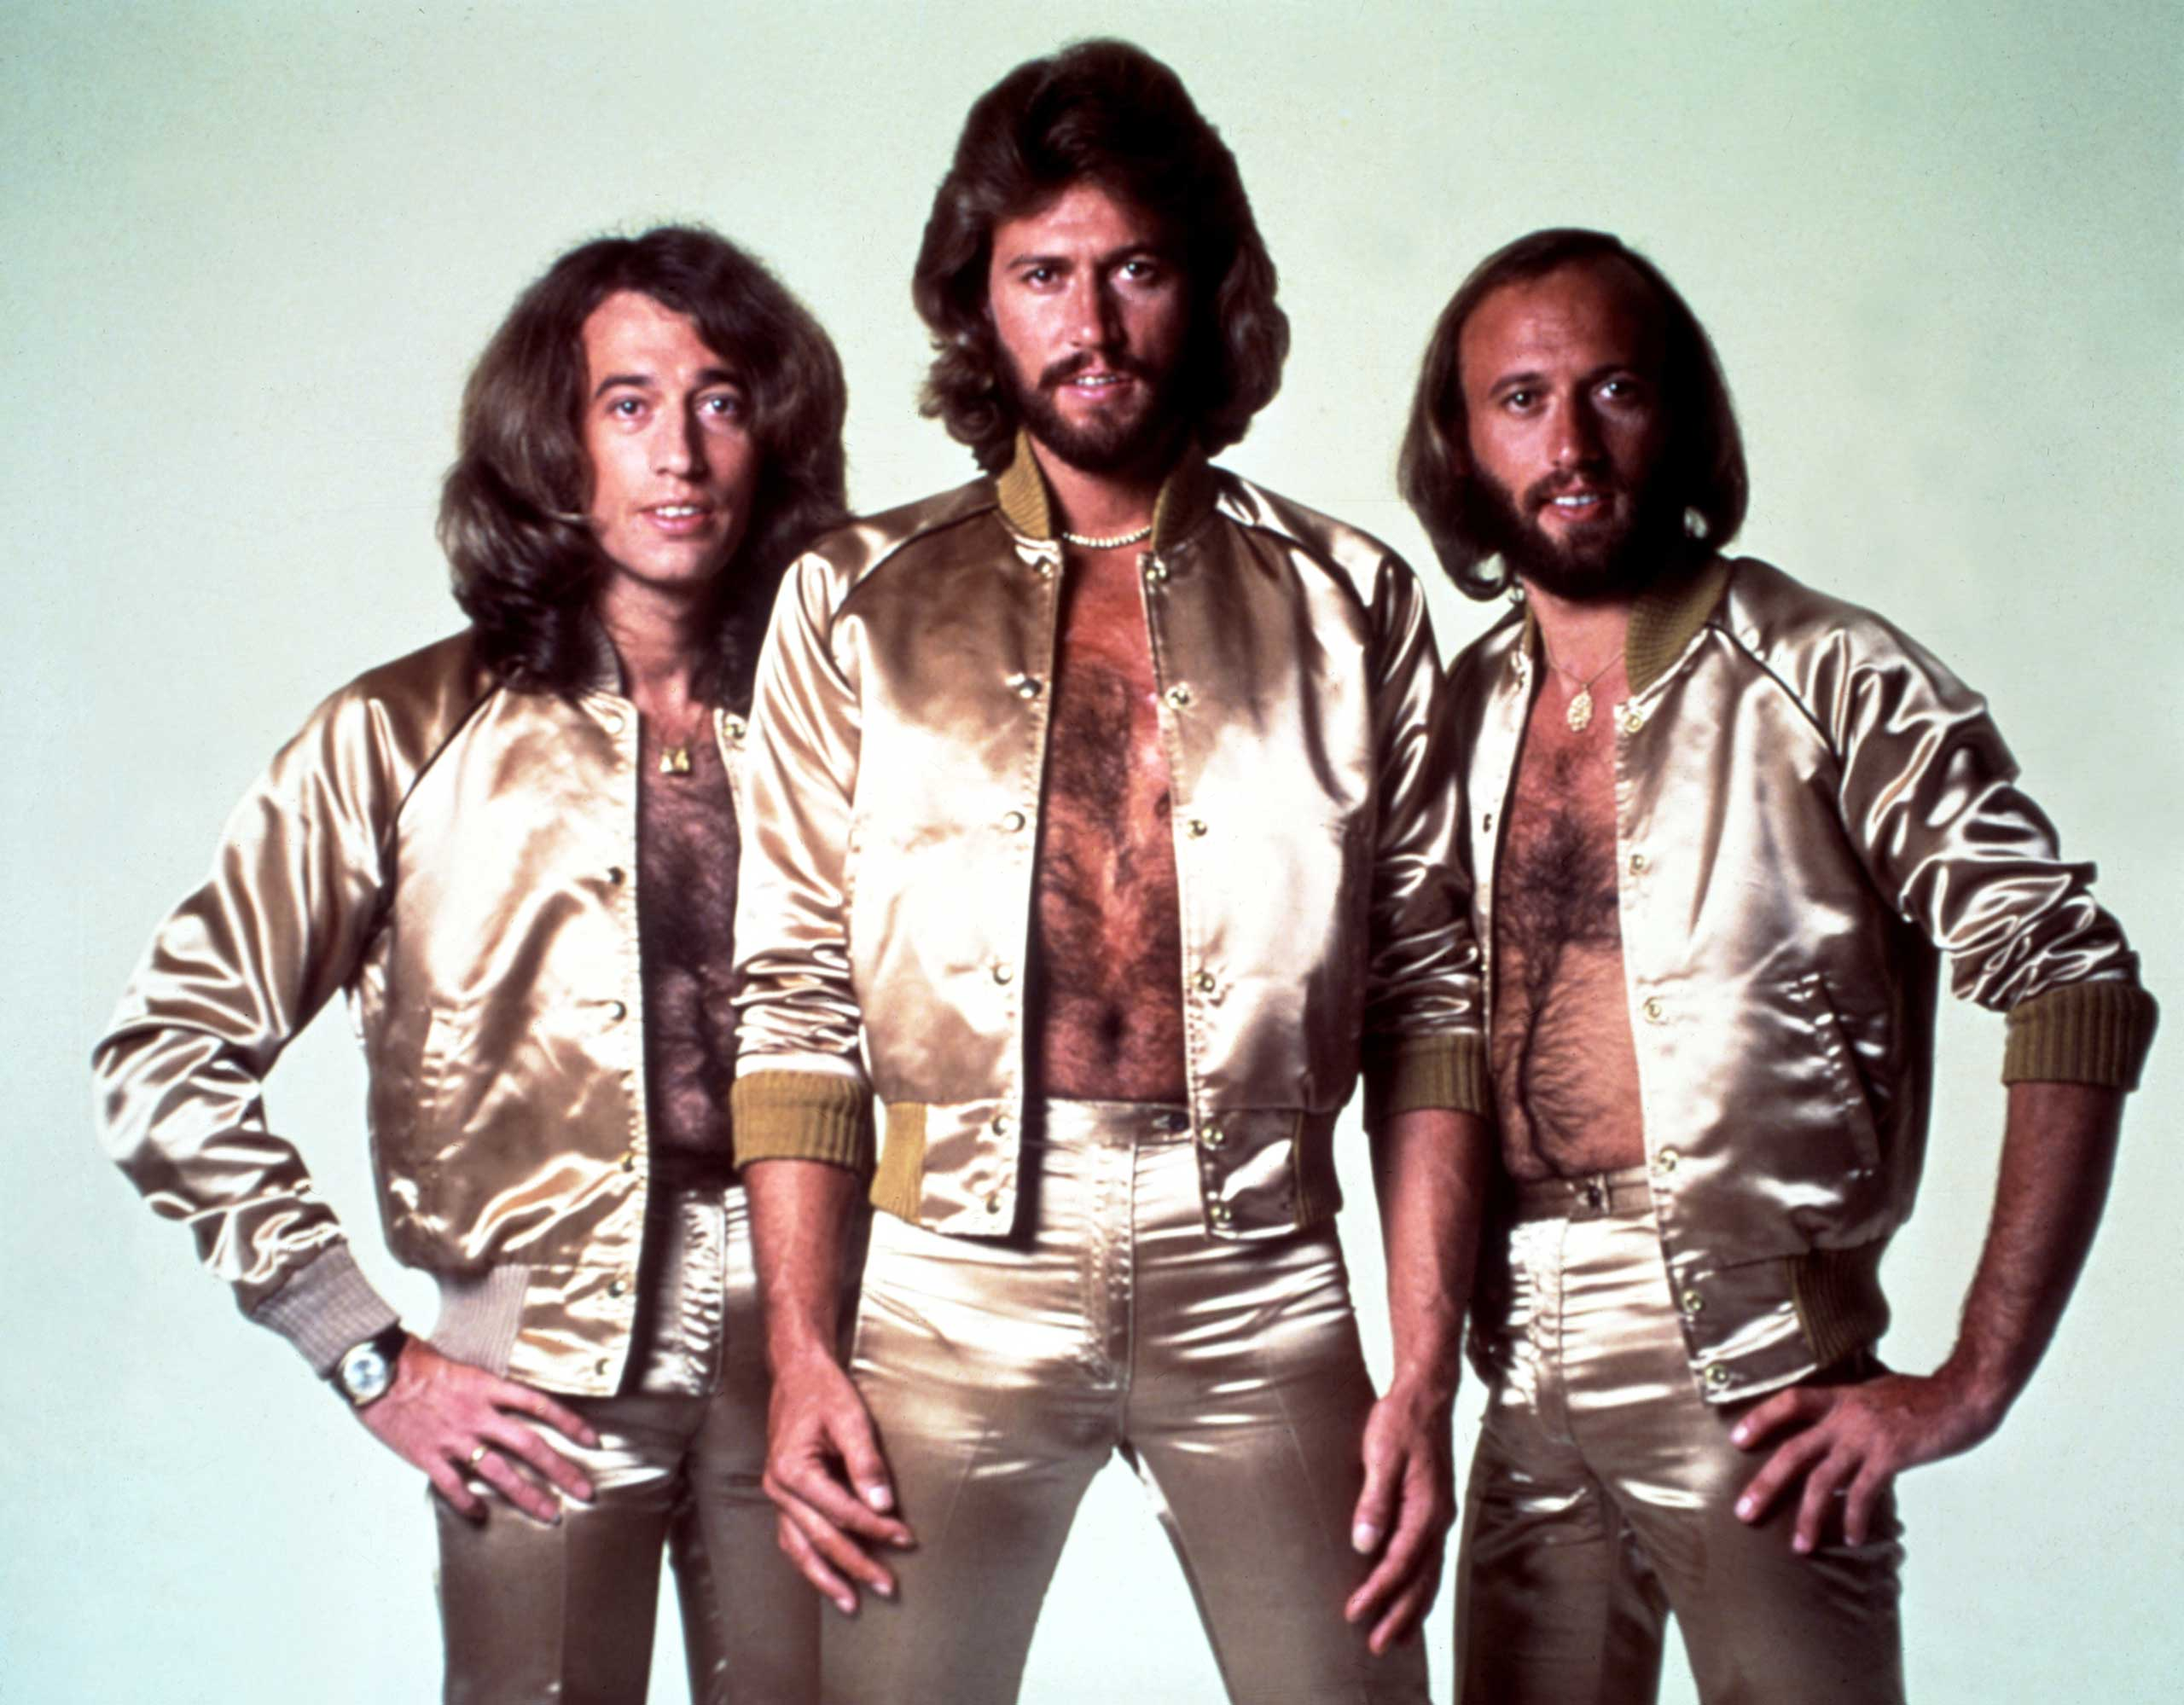 THE BEE GEES: Barry is the first born of the Gibb brothers. He was joined three years later by fraternal twins Robin and Maurice. Together, they created the monstrously successful 'Saturday Night Fever' soundtrack. A fourth brother, Andy, also enjoyed a successful career in pop.